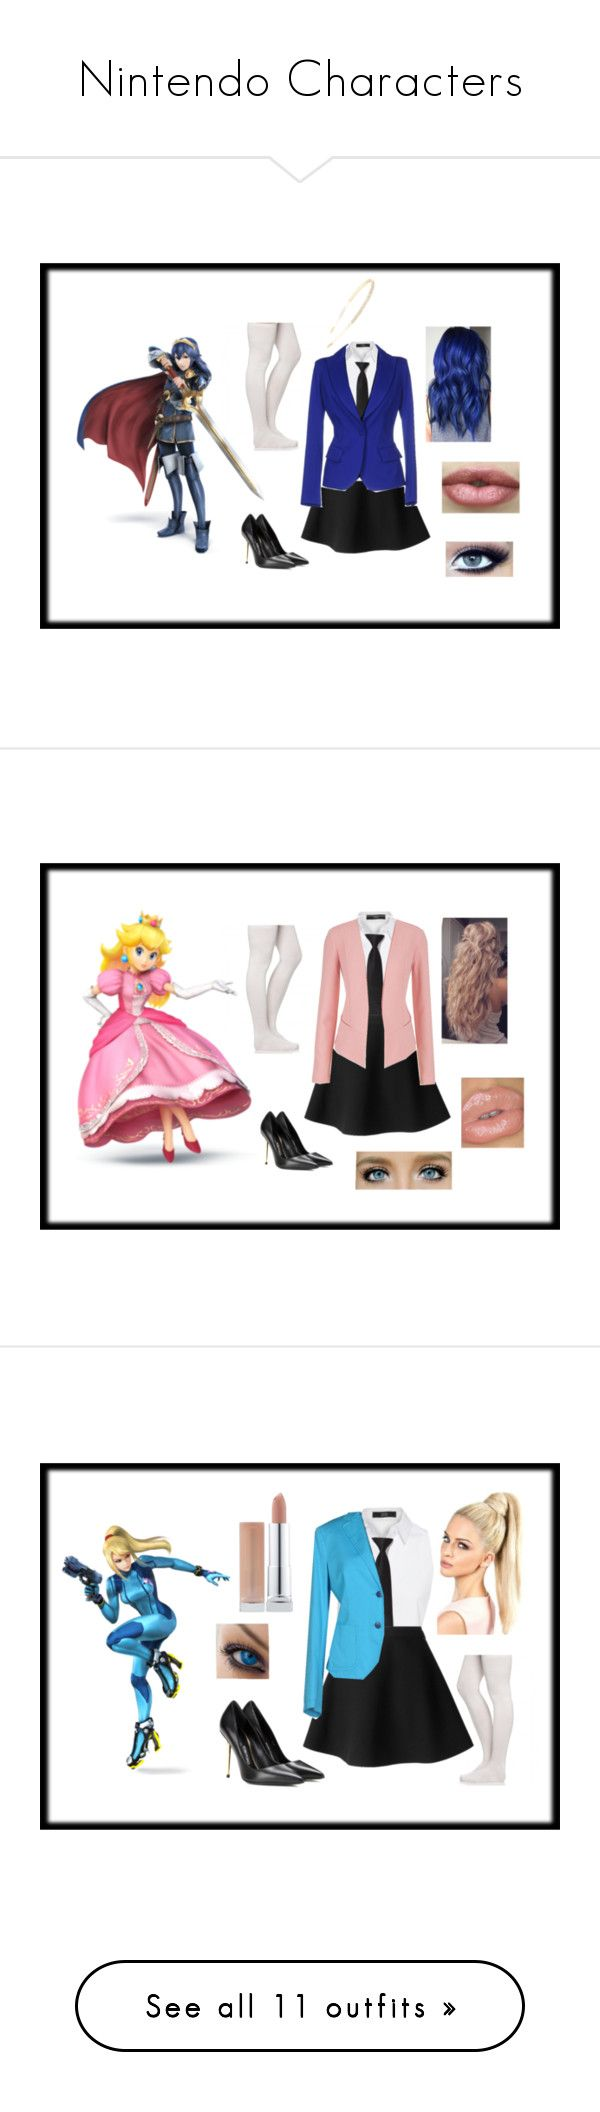 """""""Nintendo Characters"""" by lovelyloser105 ❤ liked on Polyvore featuring MSGM, Steffen Schraut, Nintendo, Plein Sud, Ultimate, Tom Ford, Cara, maurices, Manuel Ritz and ESCADA"""